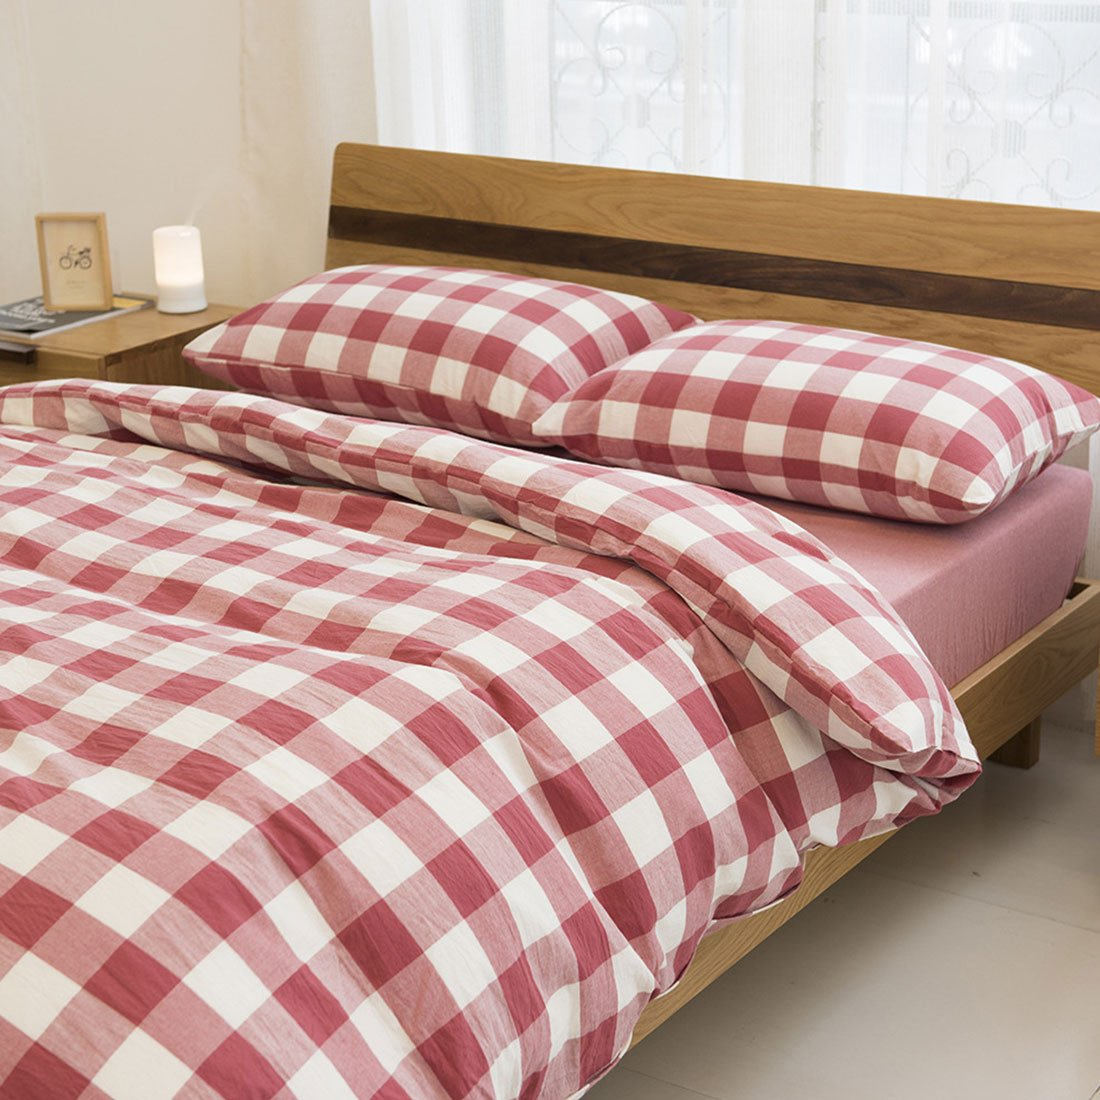 Libaoge 4 Piece Bed Sheets Set, Red White Grid Plaid Checkered Pattern, 1 Flat Sheet 1 Duvet Cover and 2 Pillow Cases